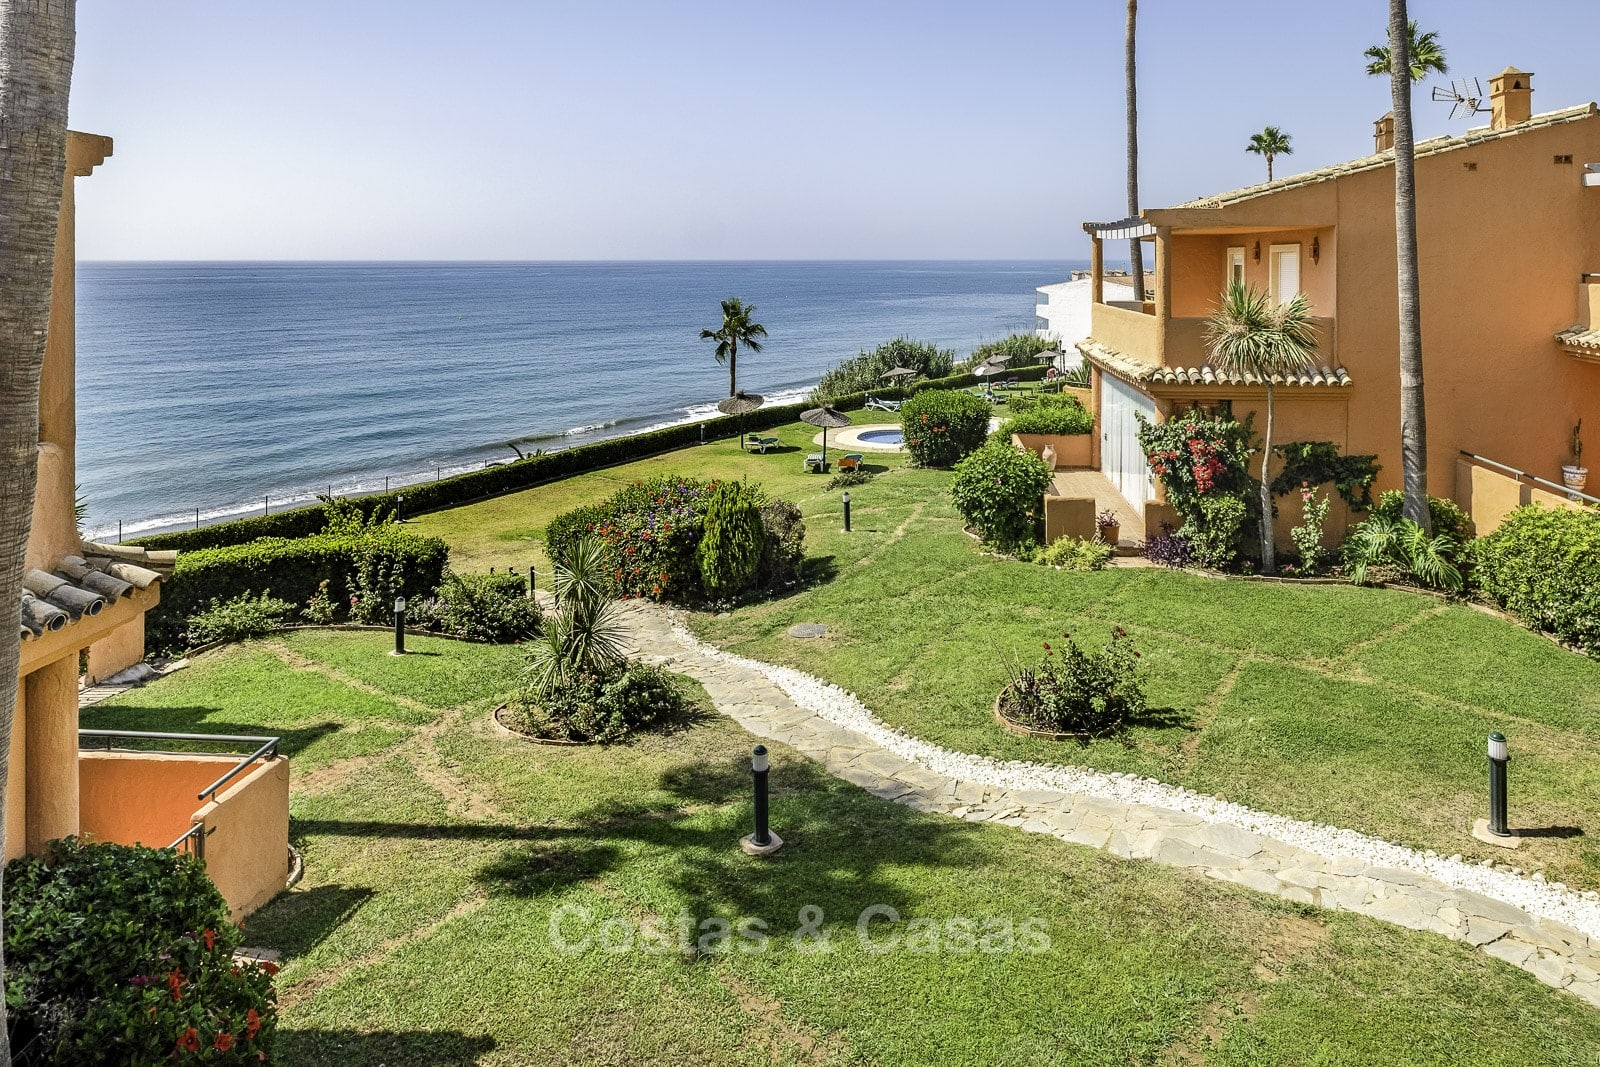 Beachfront renovated townhouse for sale with sea views in Estepona